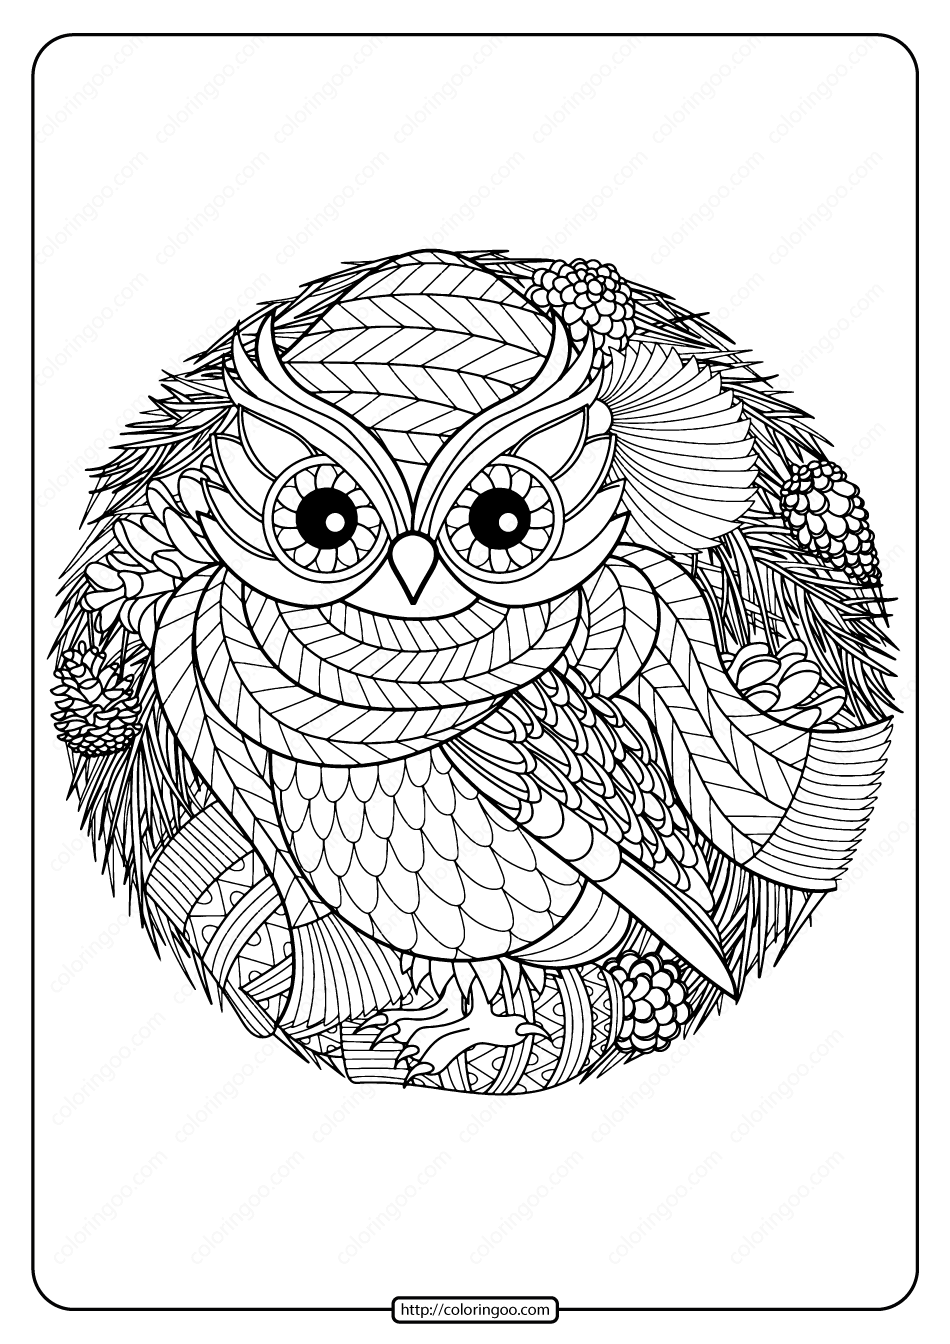 coloring page pdf bee theme adult complicated coloring page pdf digital coloring page pdf